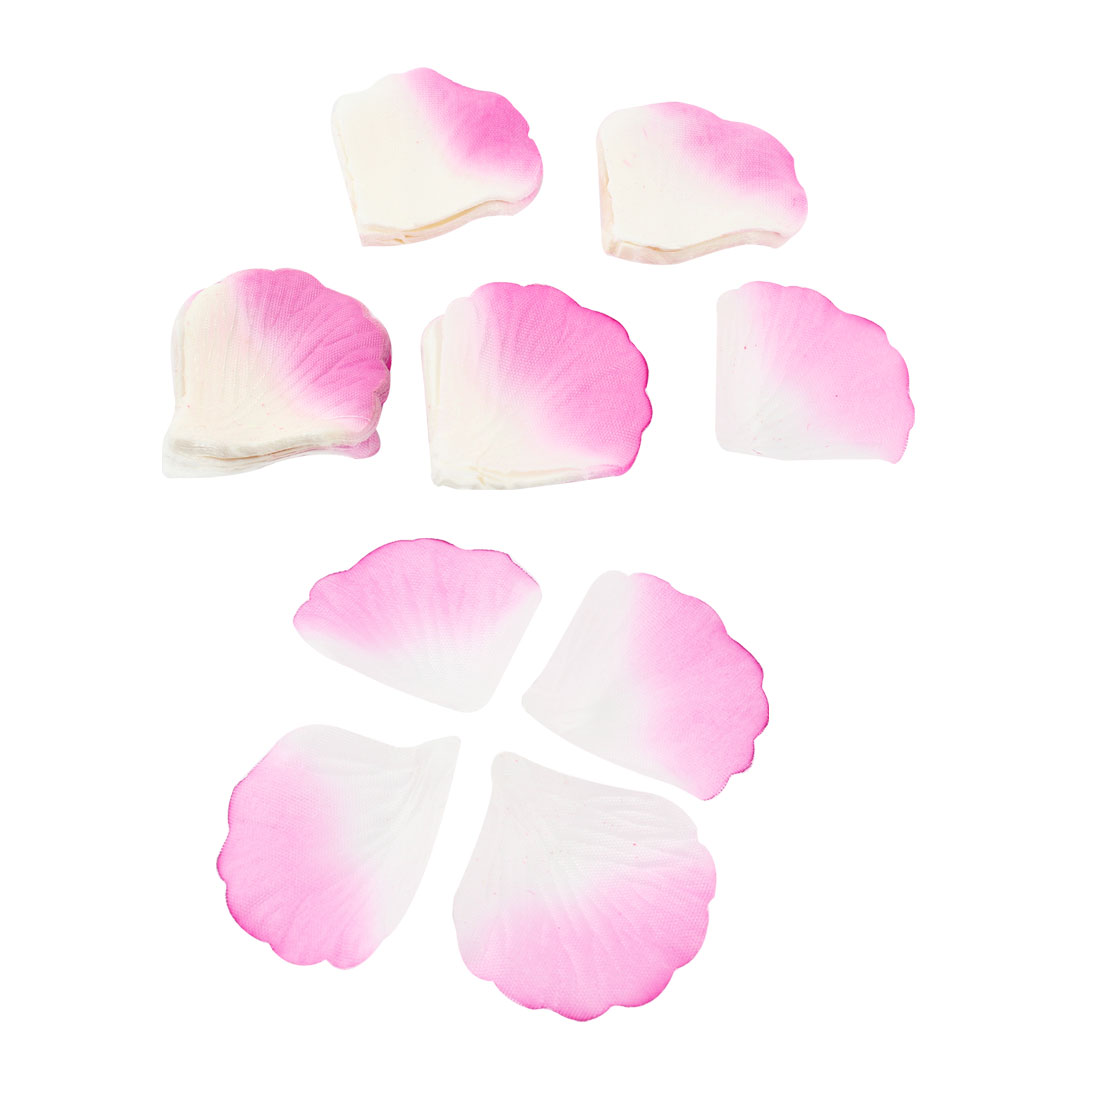 200 Pcs Artificial Fabric Rose Petal Decoration for Wedding Festival Bridal